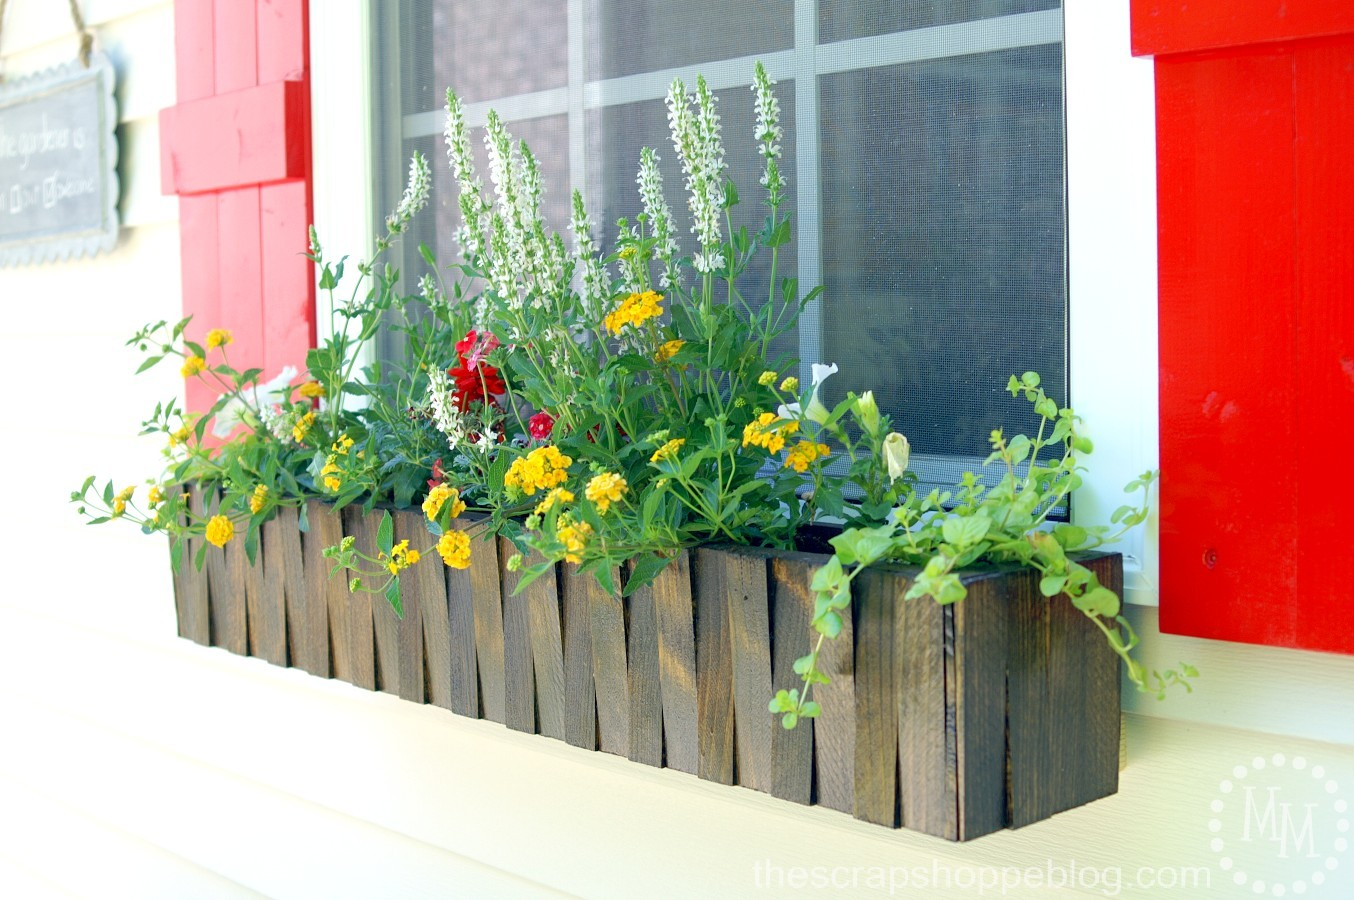 12 Summer Farmhouse Projects!